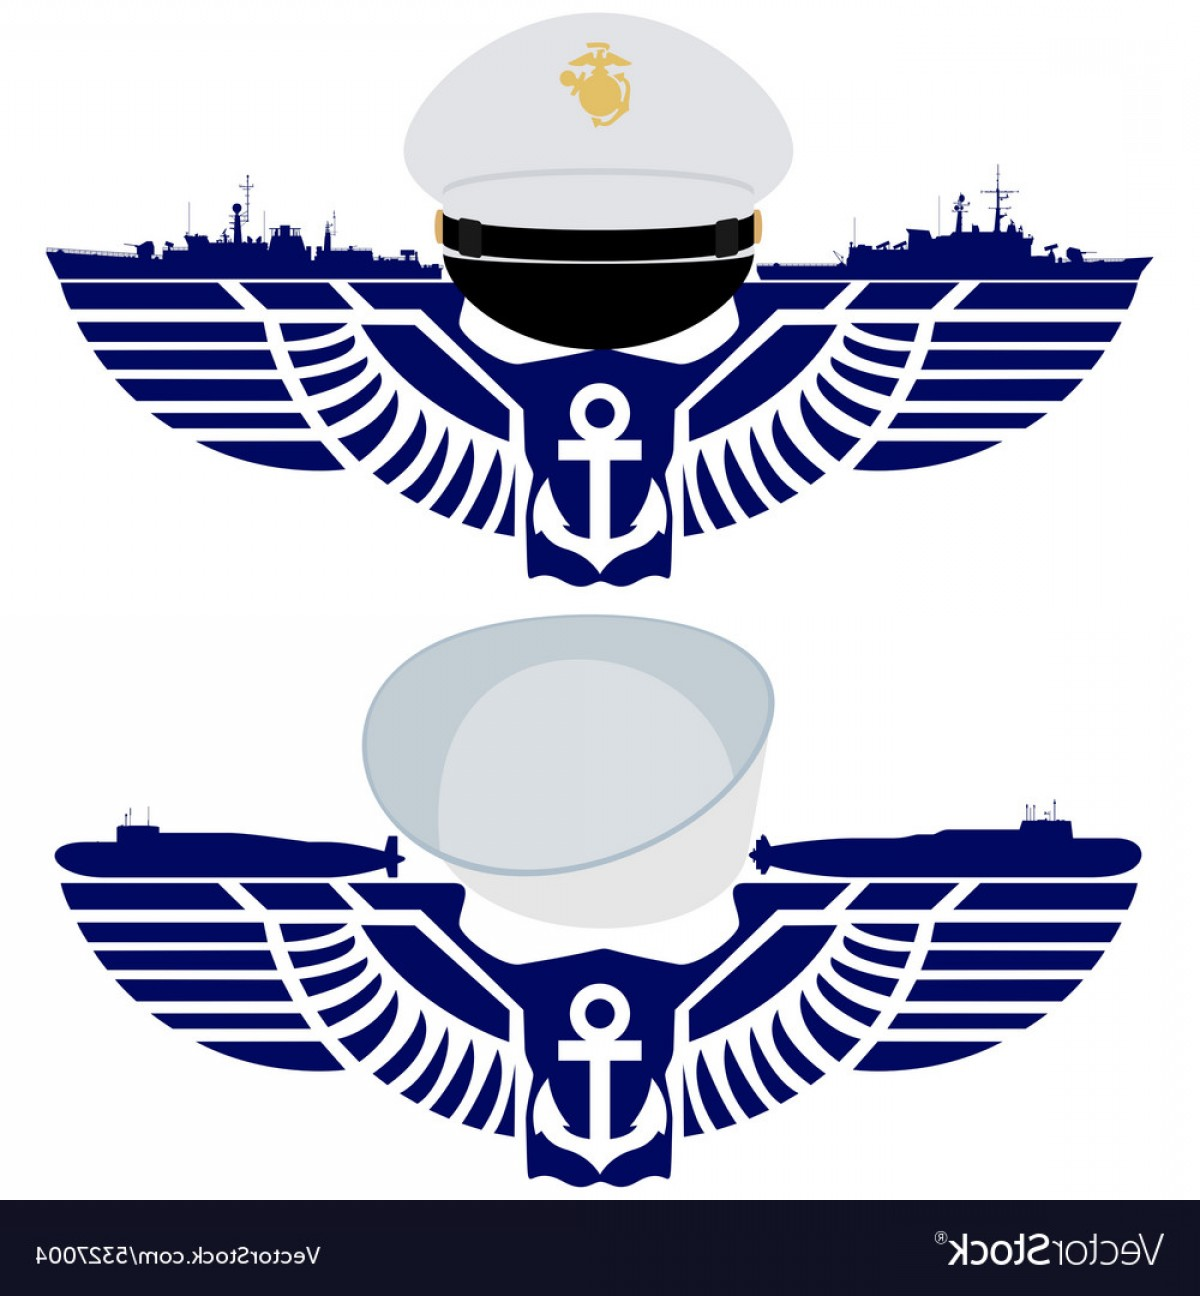 U S. Navy Logo Vector: The Icons Of The Us Navy Vector